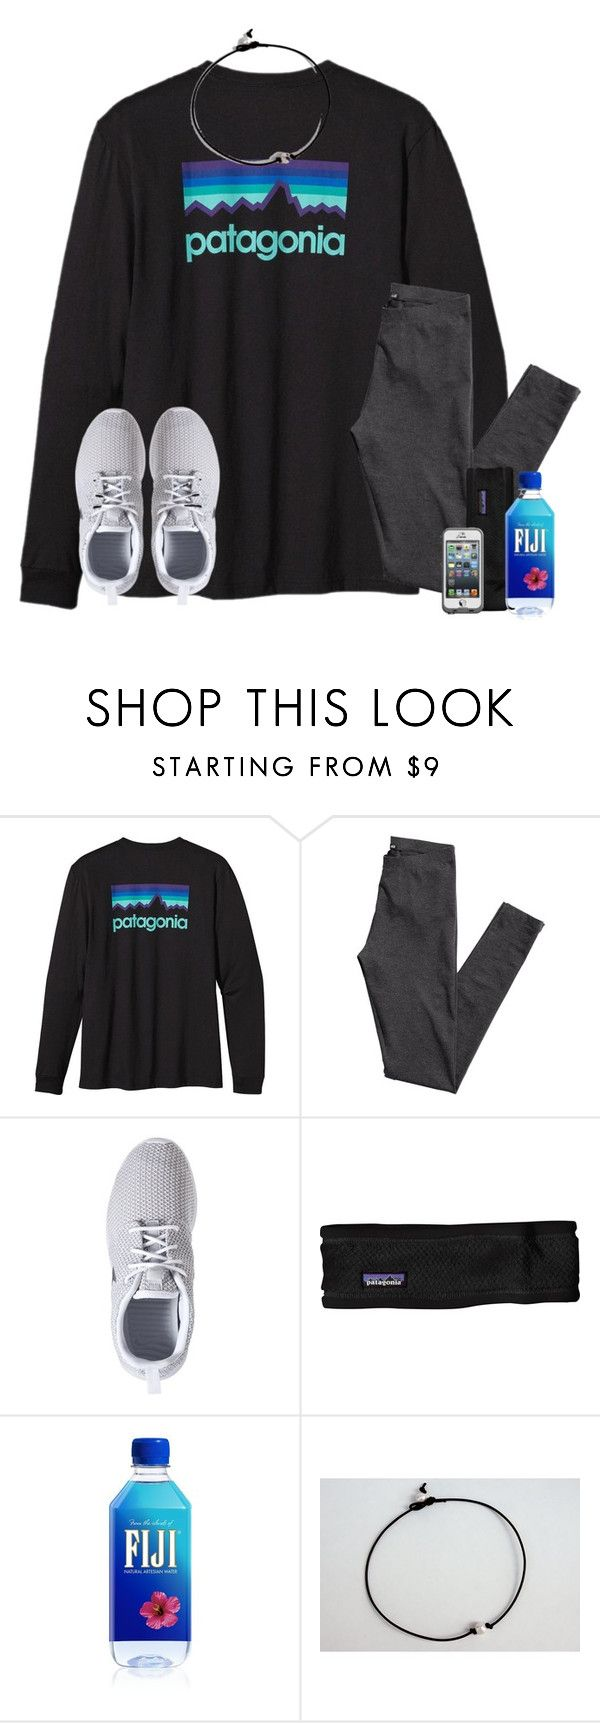 Any suggestions how to redecorate a room preppy style? by katew4019 ❤ liked on Polyvore featuring Patagonia, HM, NIKE and LifeProof